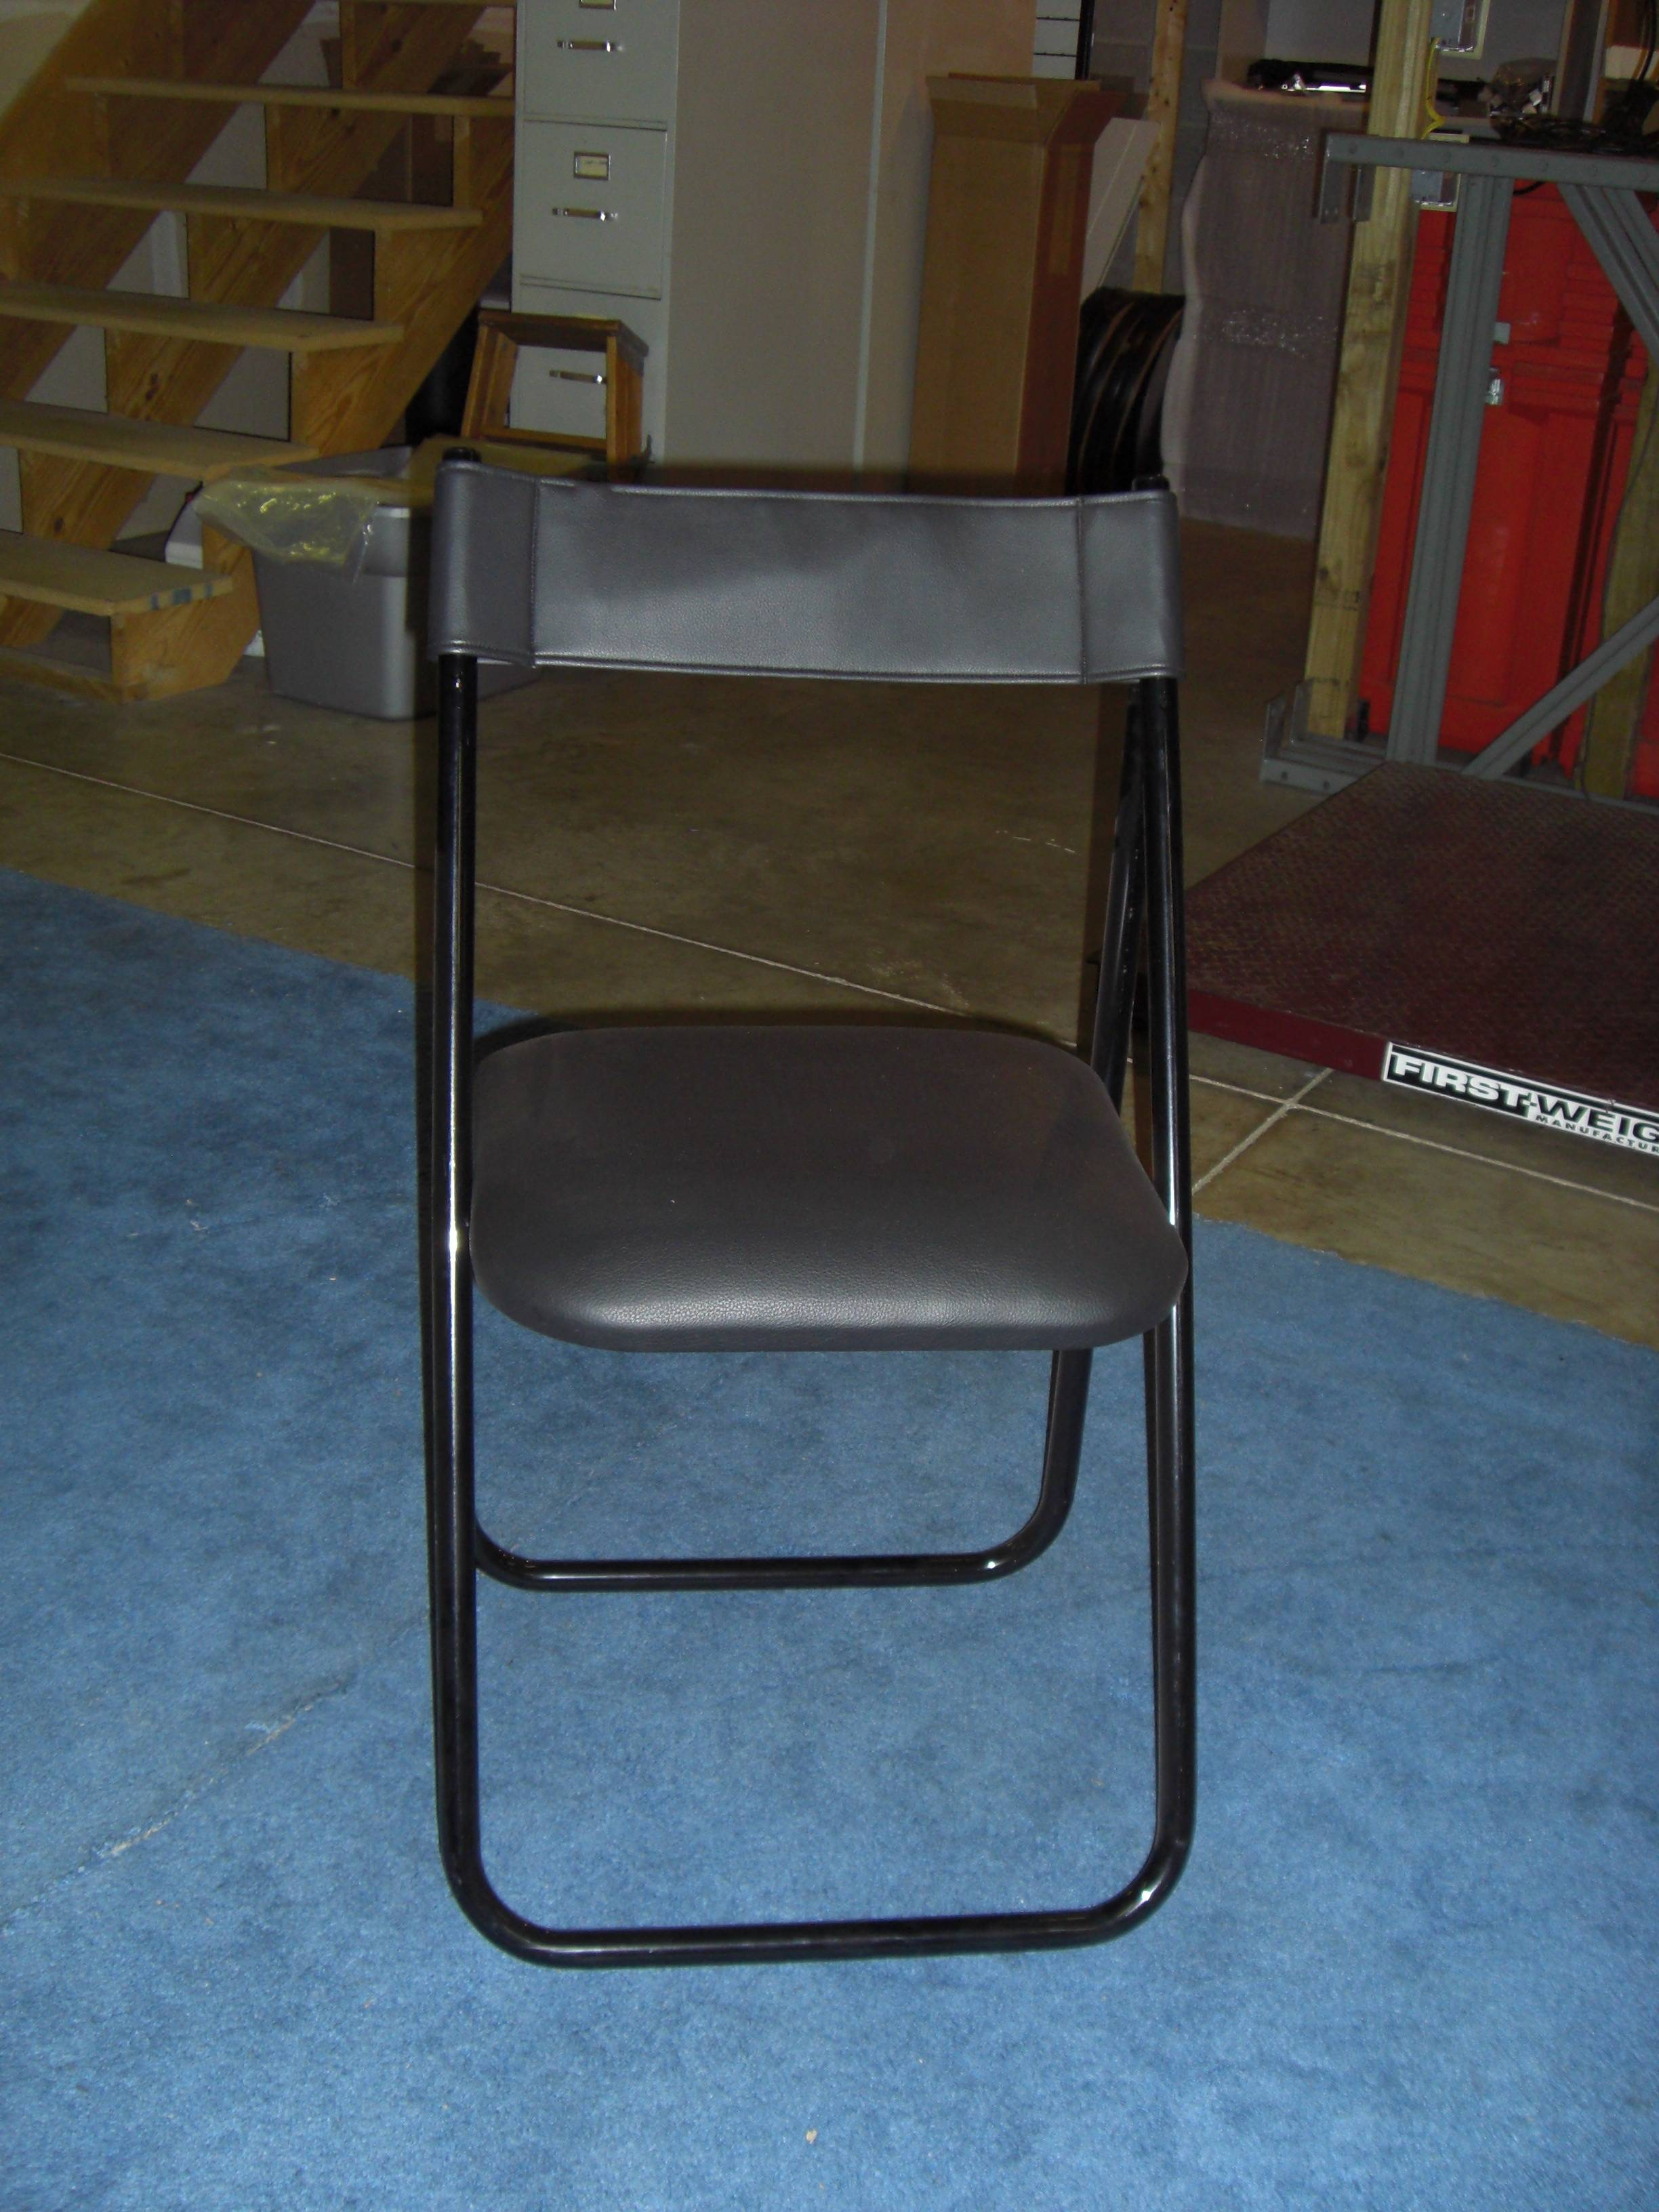 Trussworks folding chair